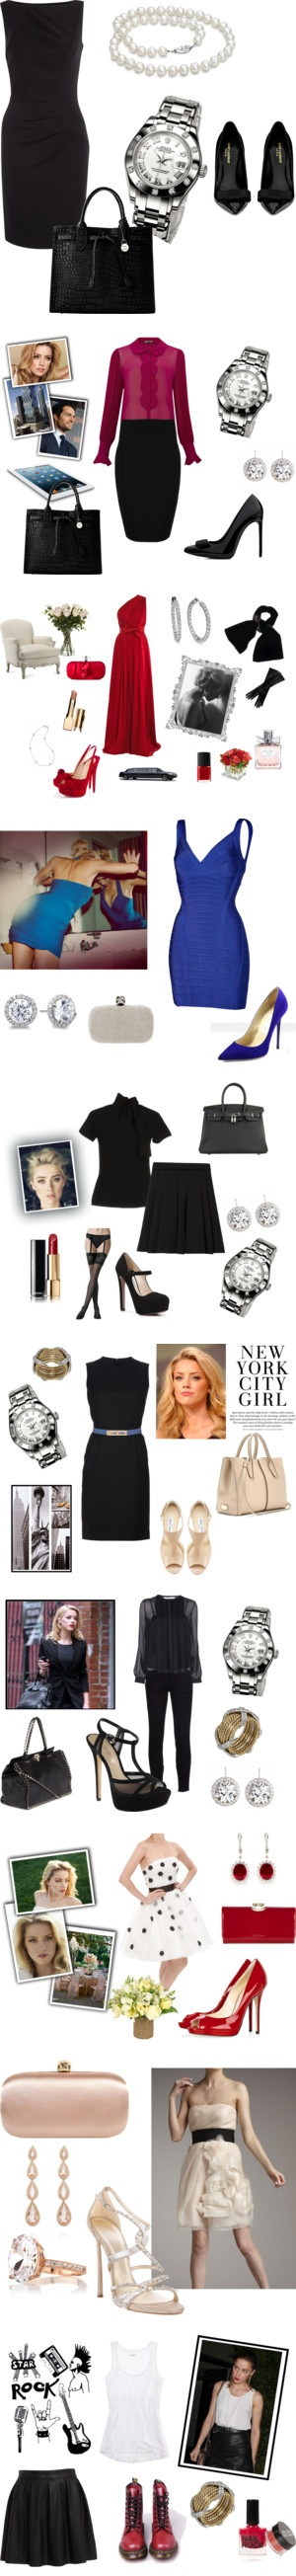 """""""Eva Tramell's closet - Bared to you (Crossfire Trilogy)"""" by fiftycross on Polyvore"""